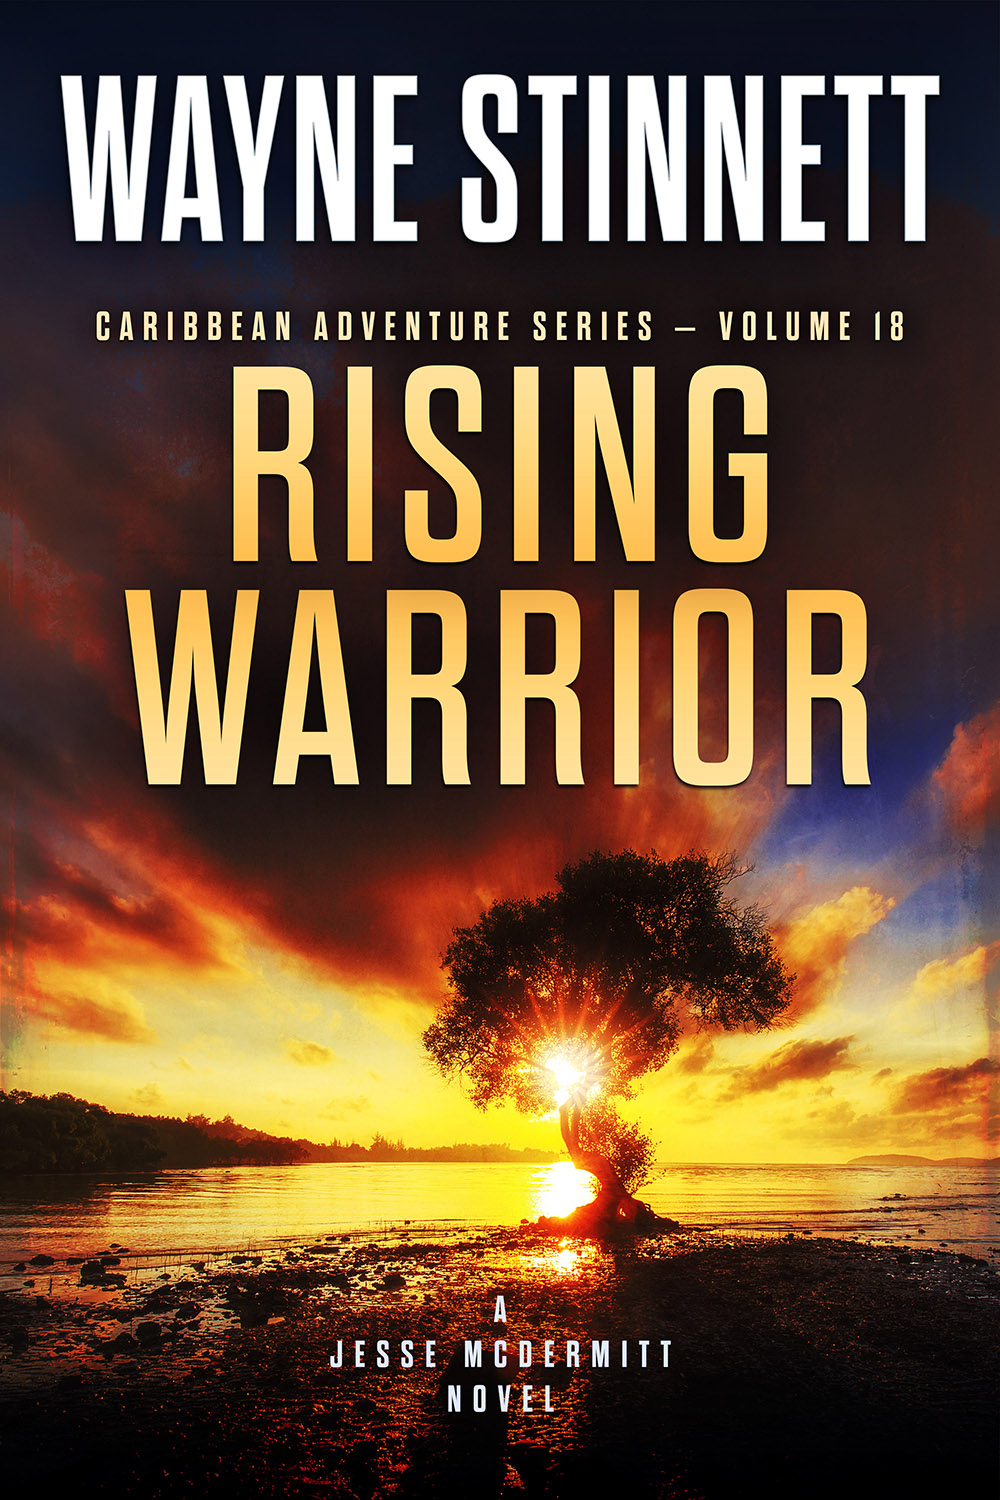 Book Cover of Rising Warrior by Wayne Stinnett